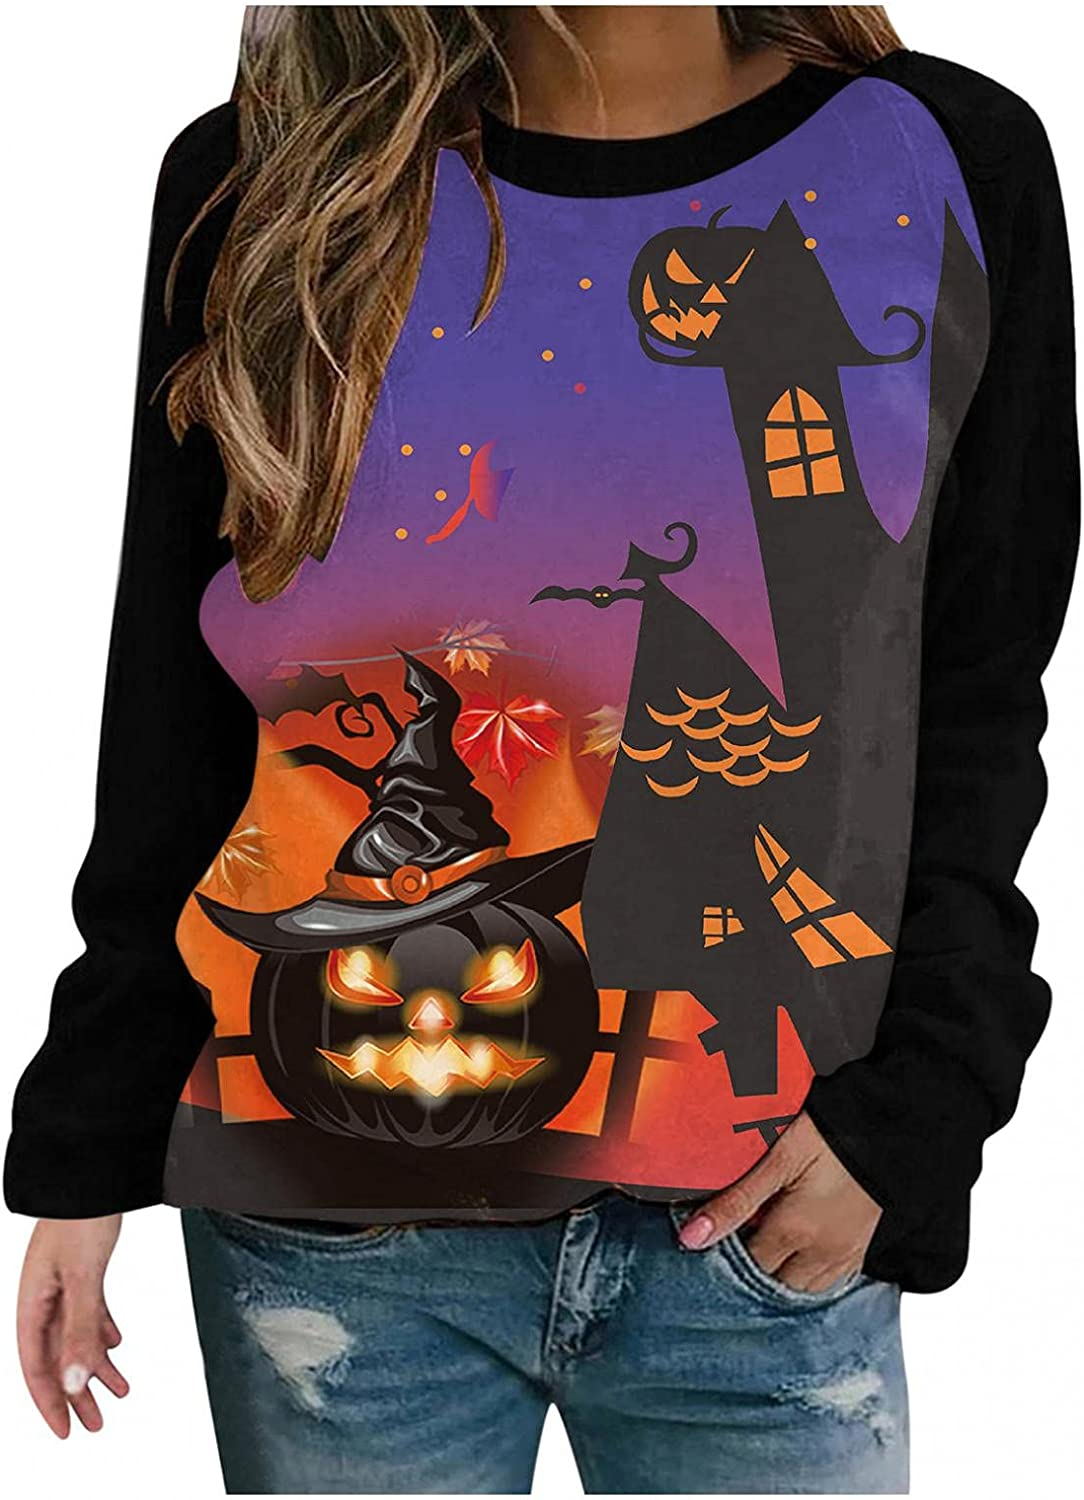 Max 63% OFF Halloween Crewneck Sweatshirt for Women Tunic Sleeve Long Recommended Casual